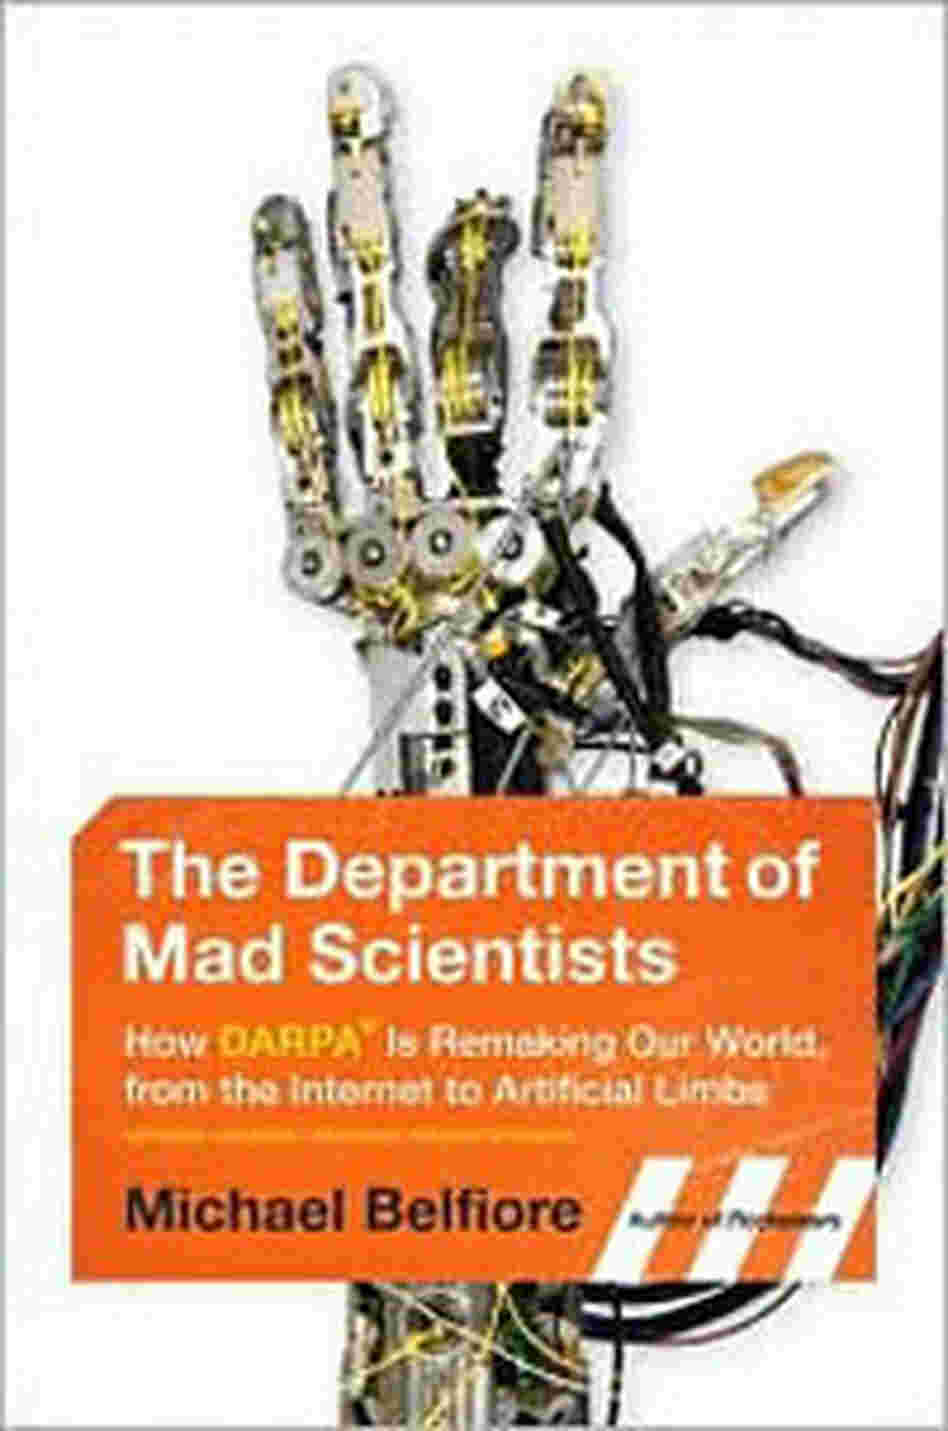 'The Department of Mad Scientists'